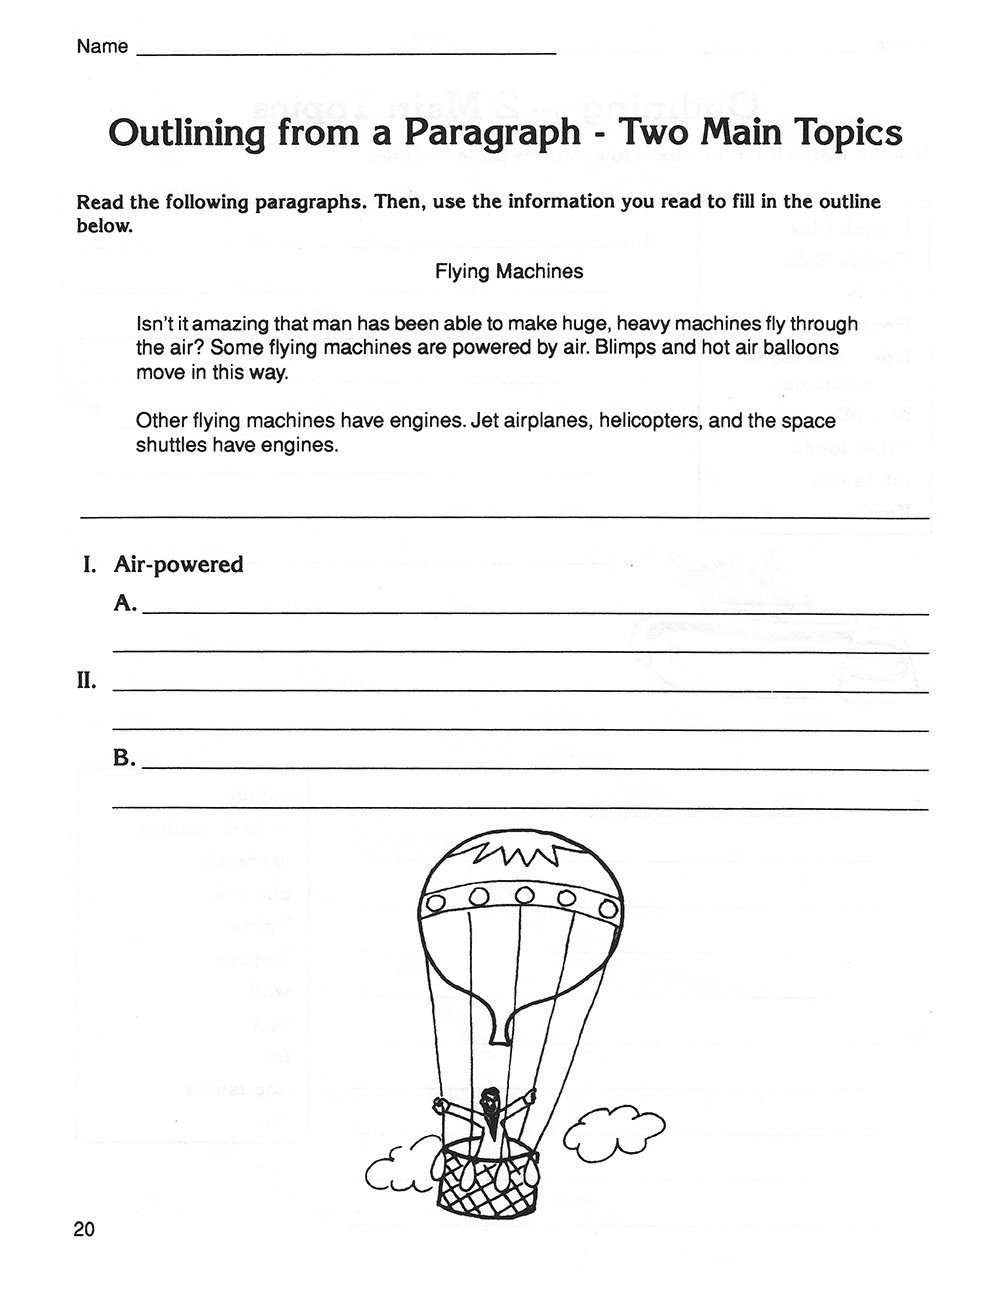 Outlining Grades 5-8 sample pages